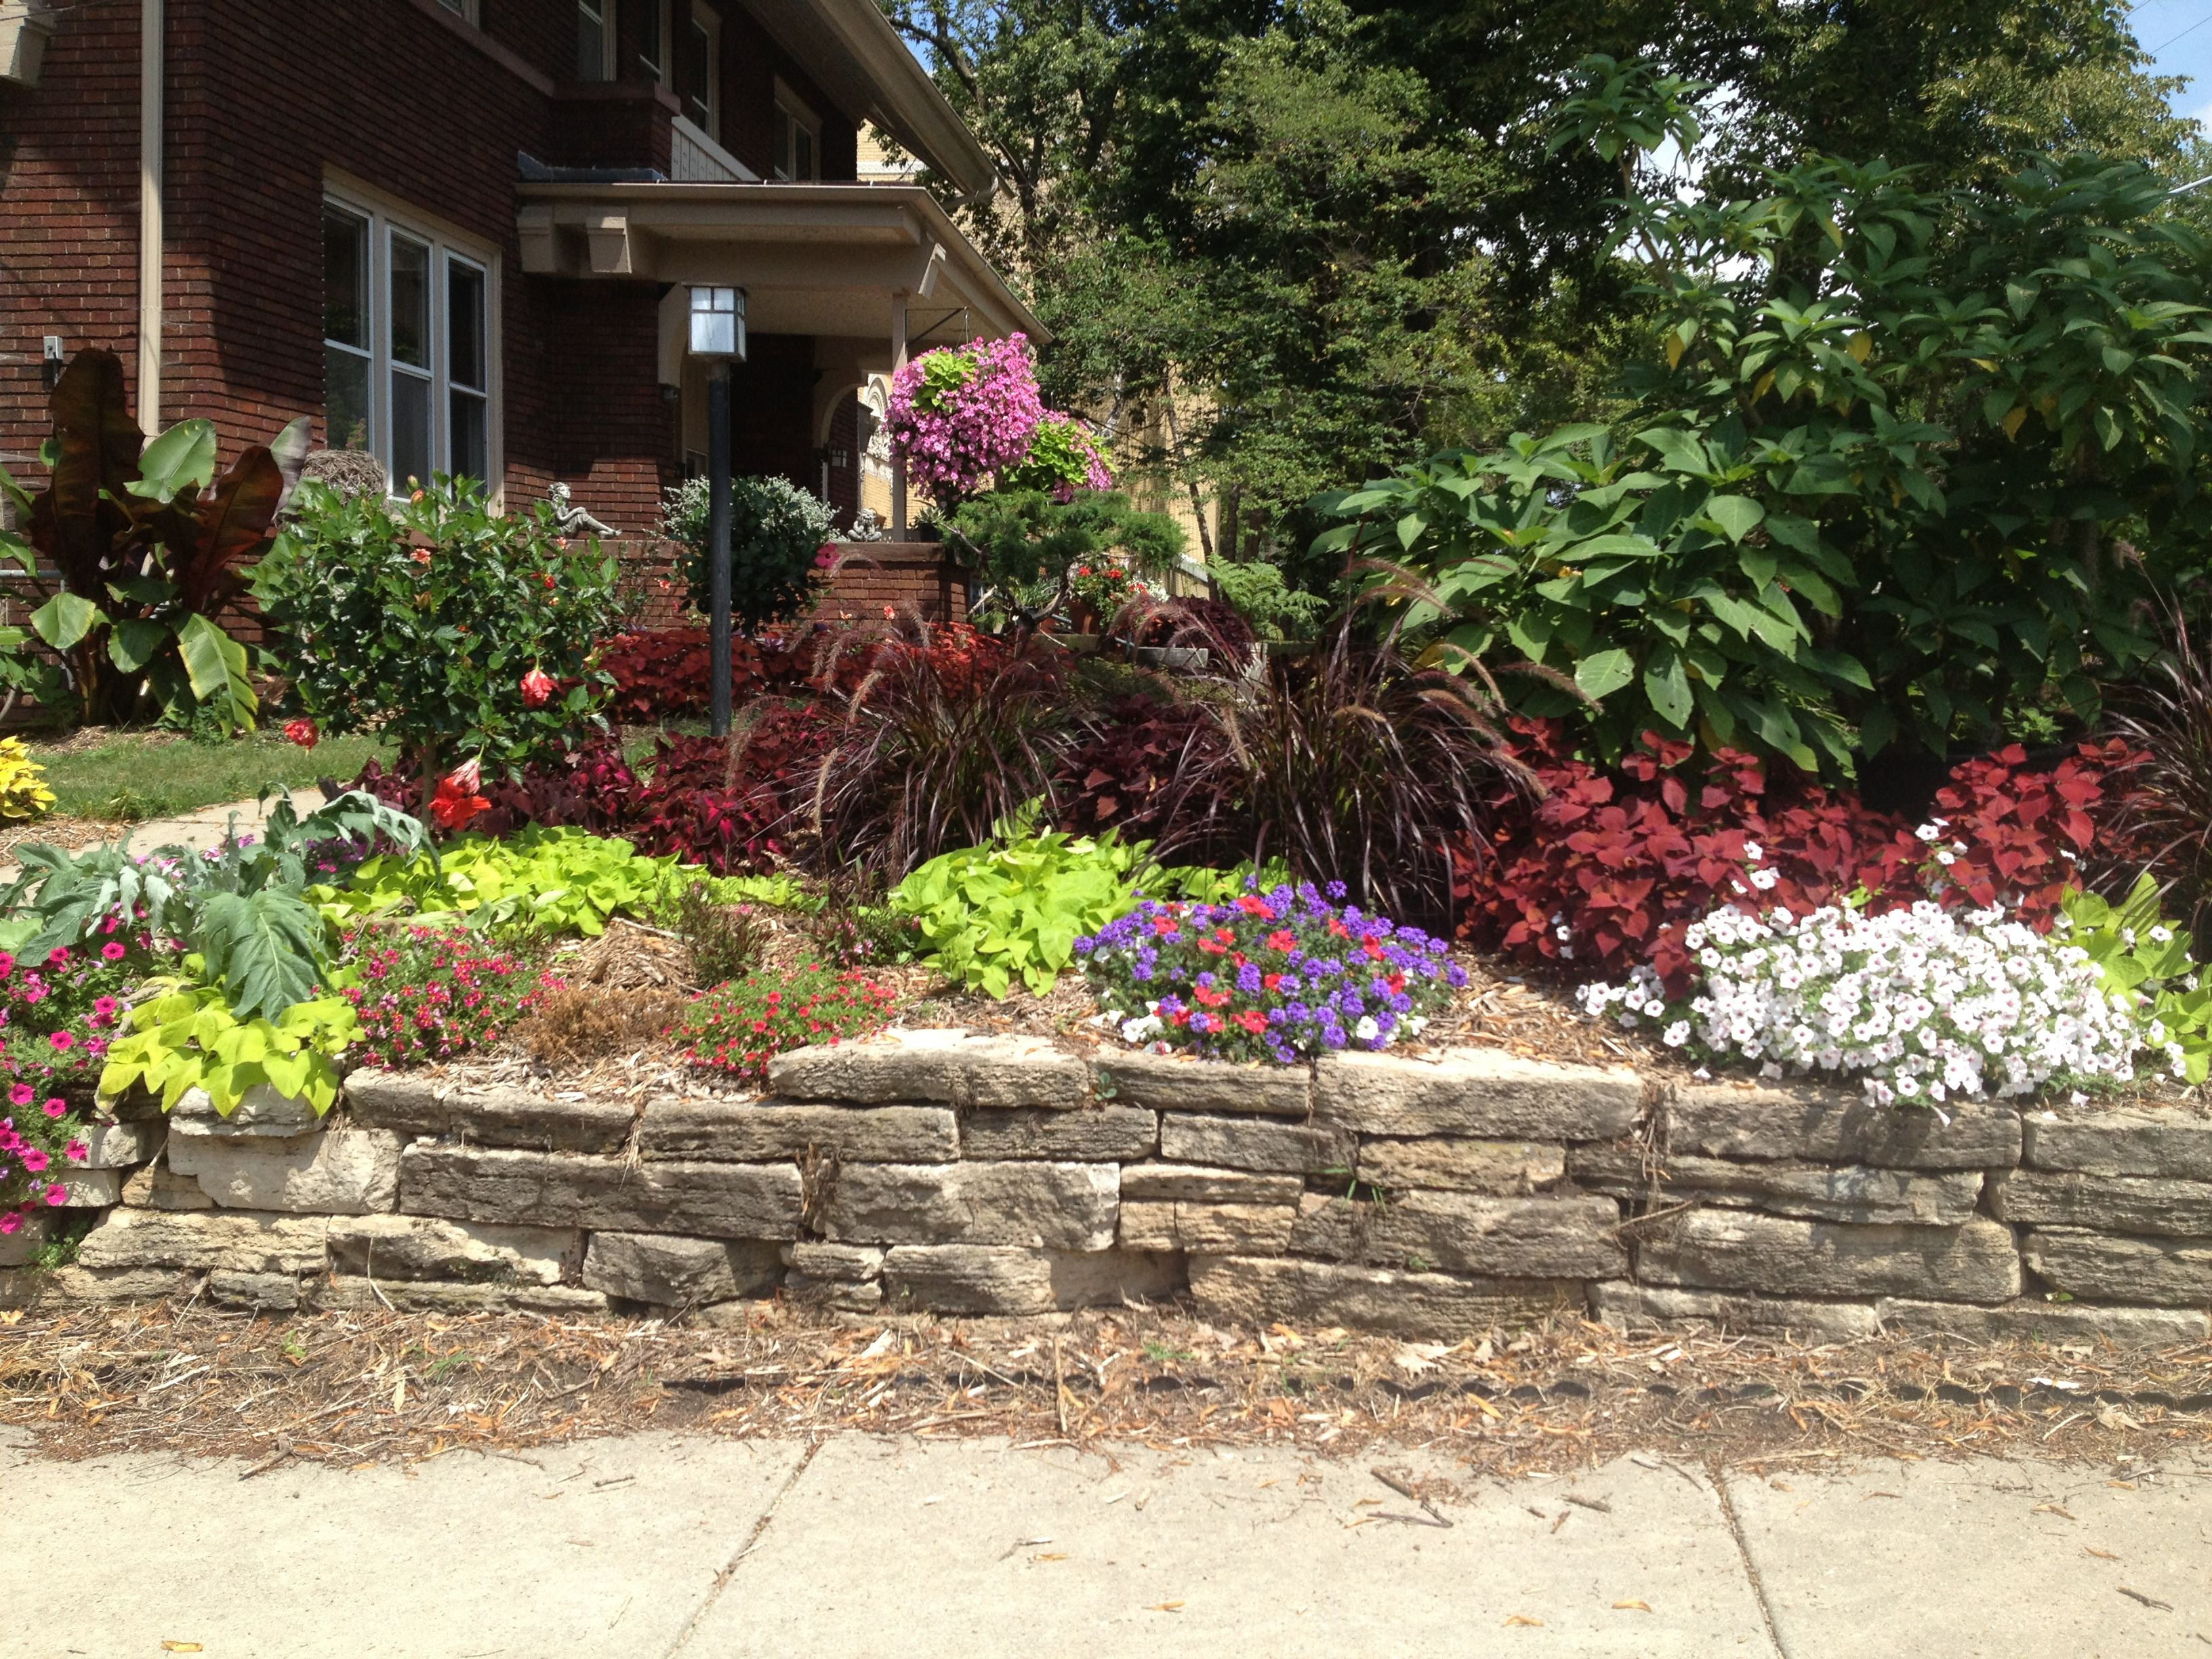 Landscaping, flowers, red brick house   Front yard ...